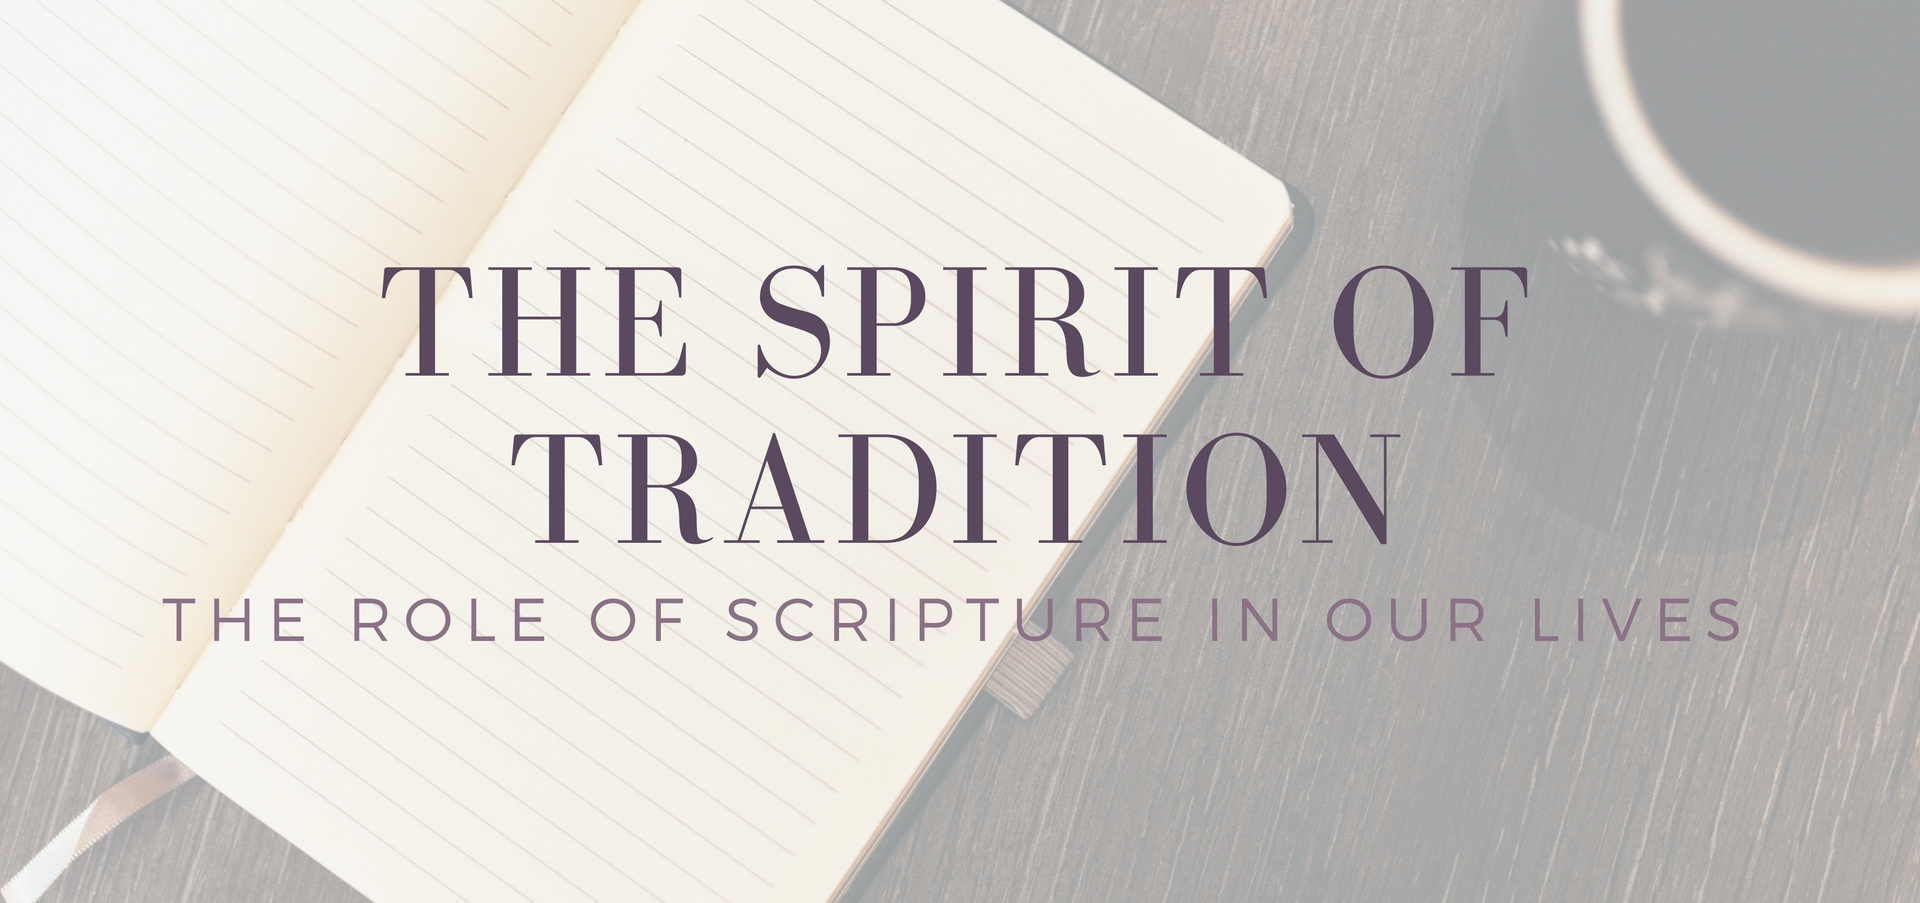 The Spirit of Tradition: The Role of Scripture in Our Lives - reflections on what the Rich Man's conversation with Abraham can tell us on KateRaeDavis.com